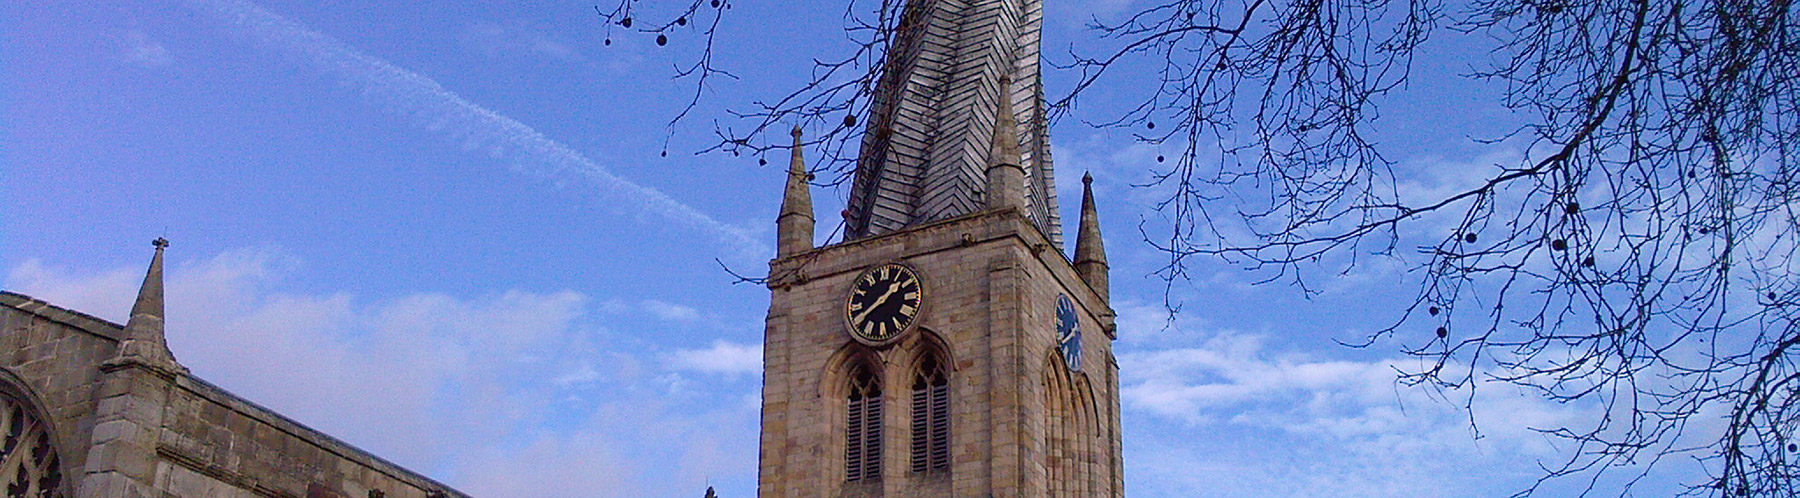 an image of Chesterfield church spire